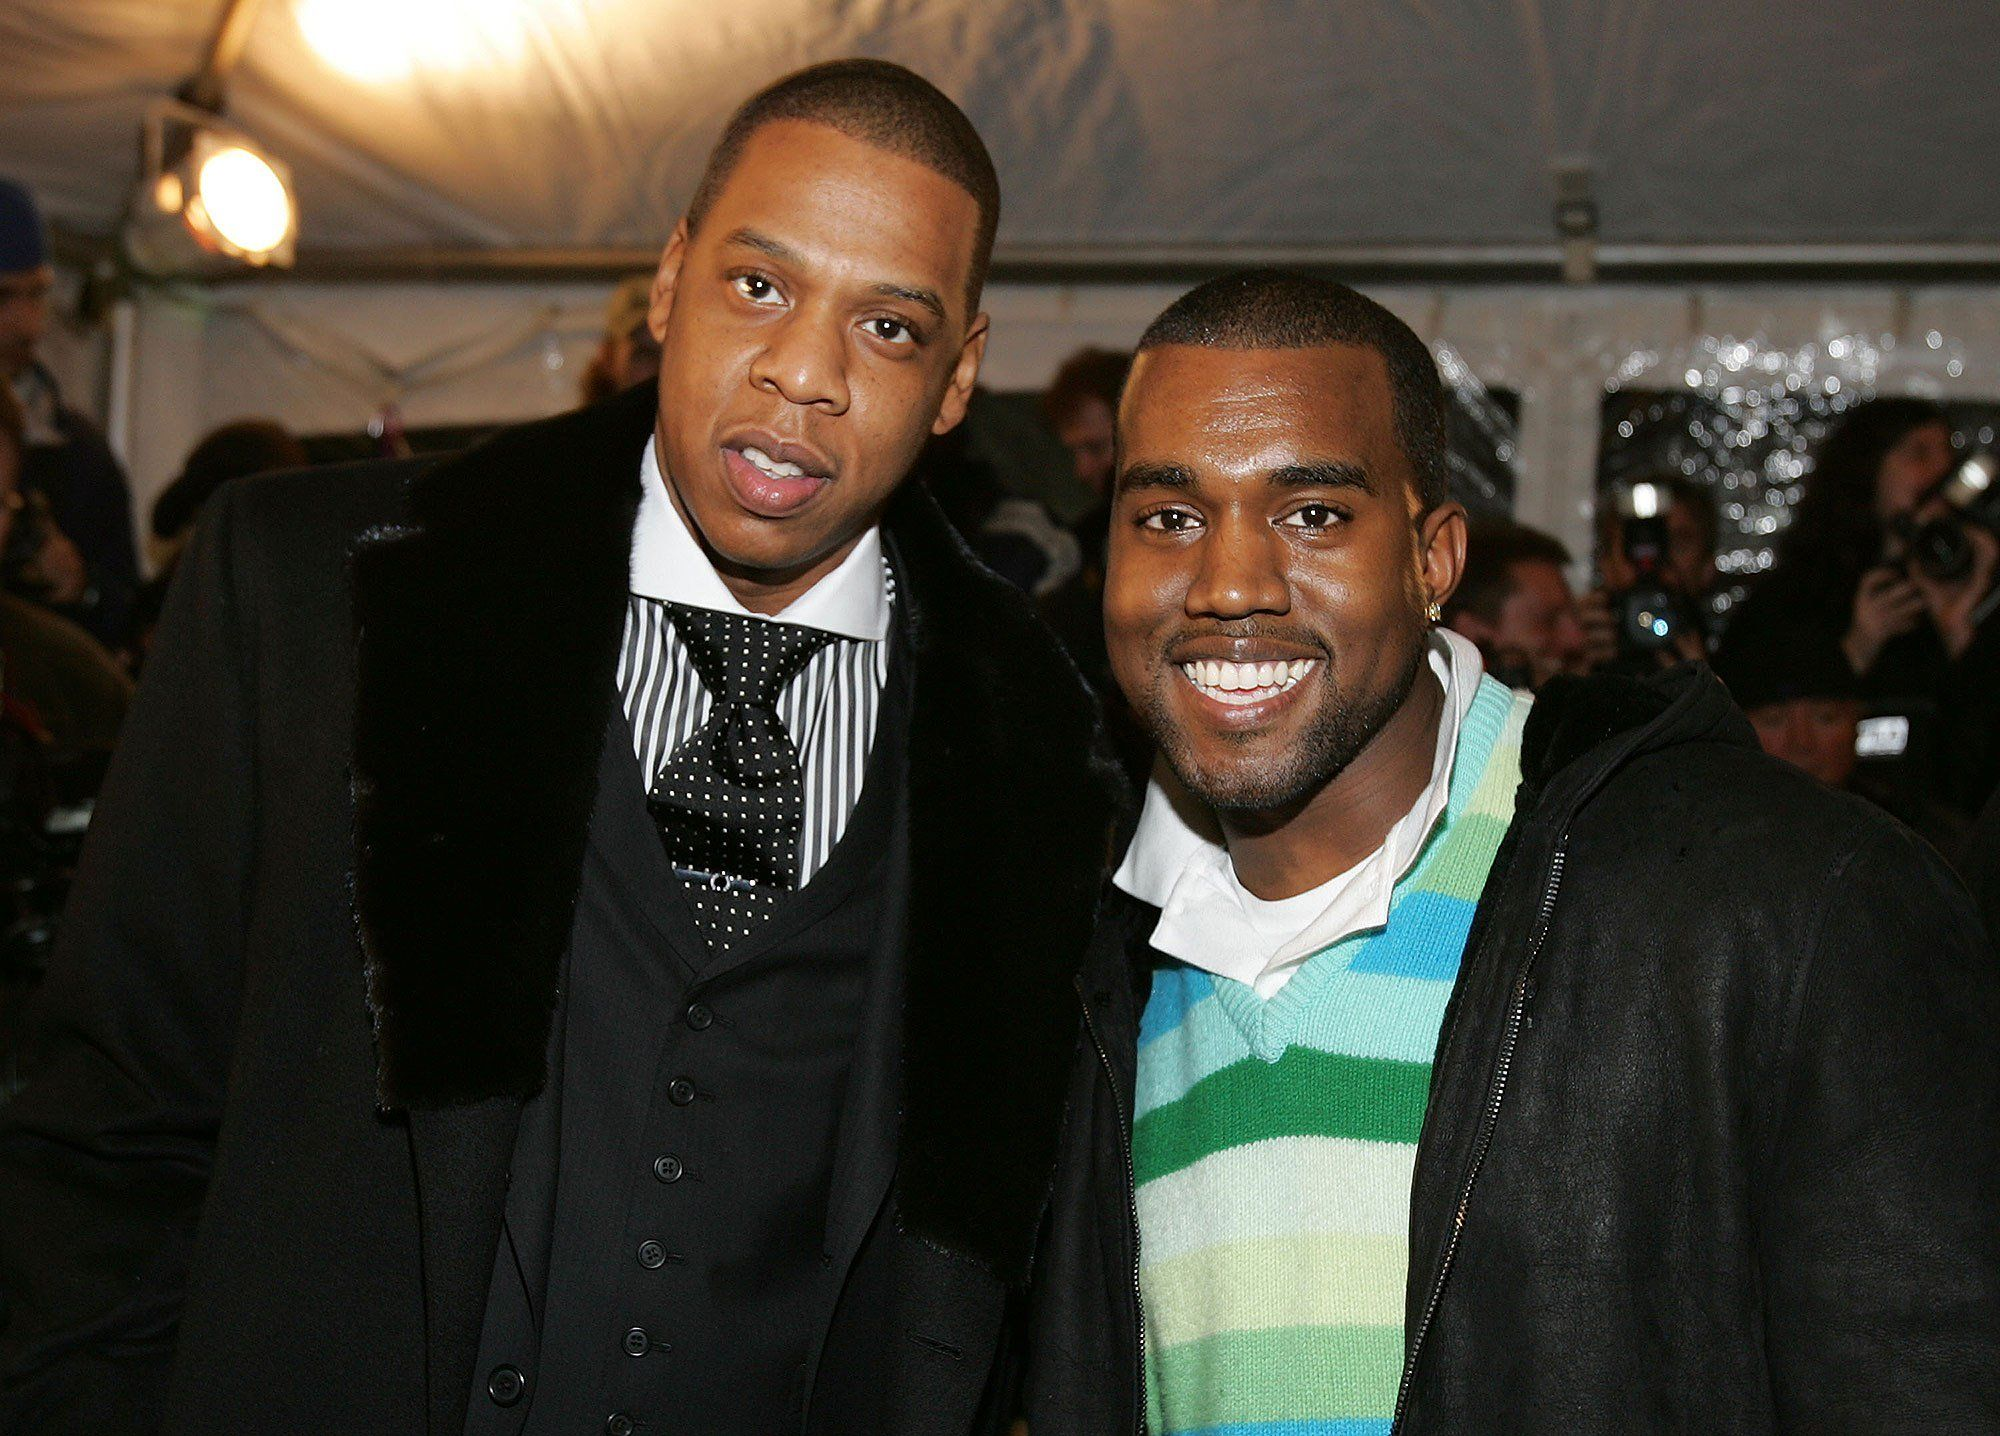 Jay Z And Kanye West Party Together At Diddy S Birthday Bash Despite Years Of Public Beefing Jay Z Kanye West Kanye